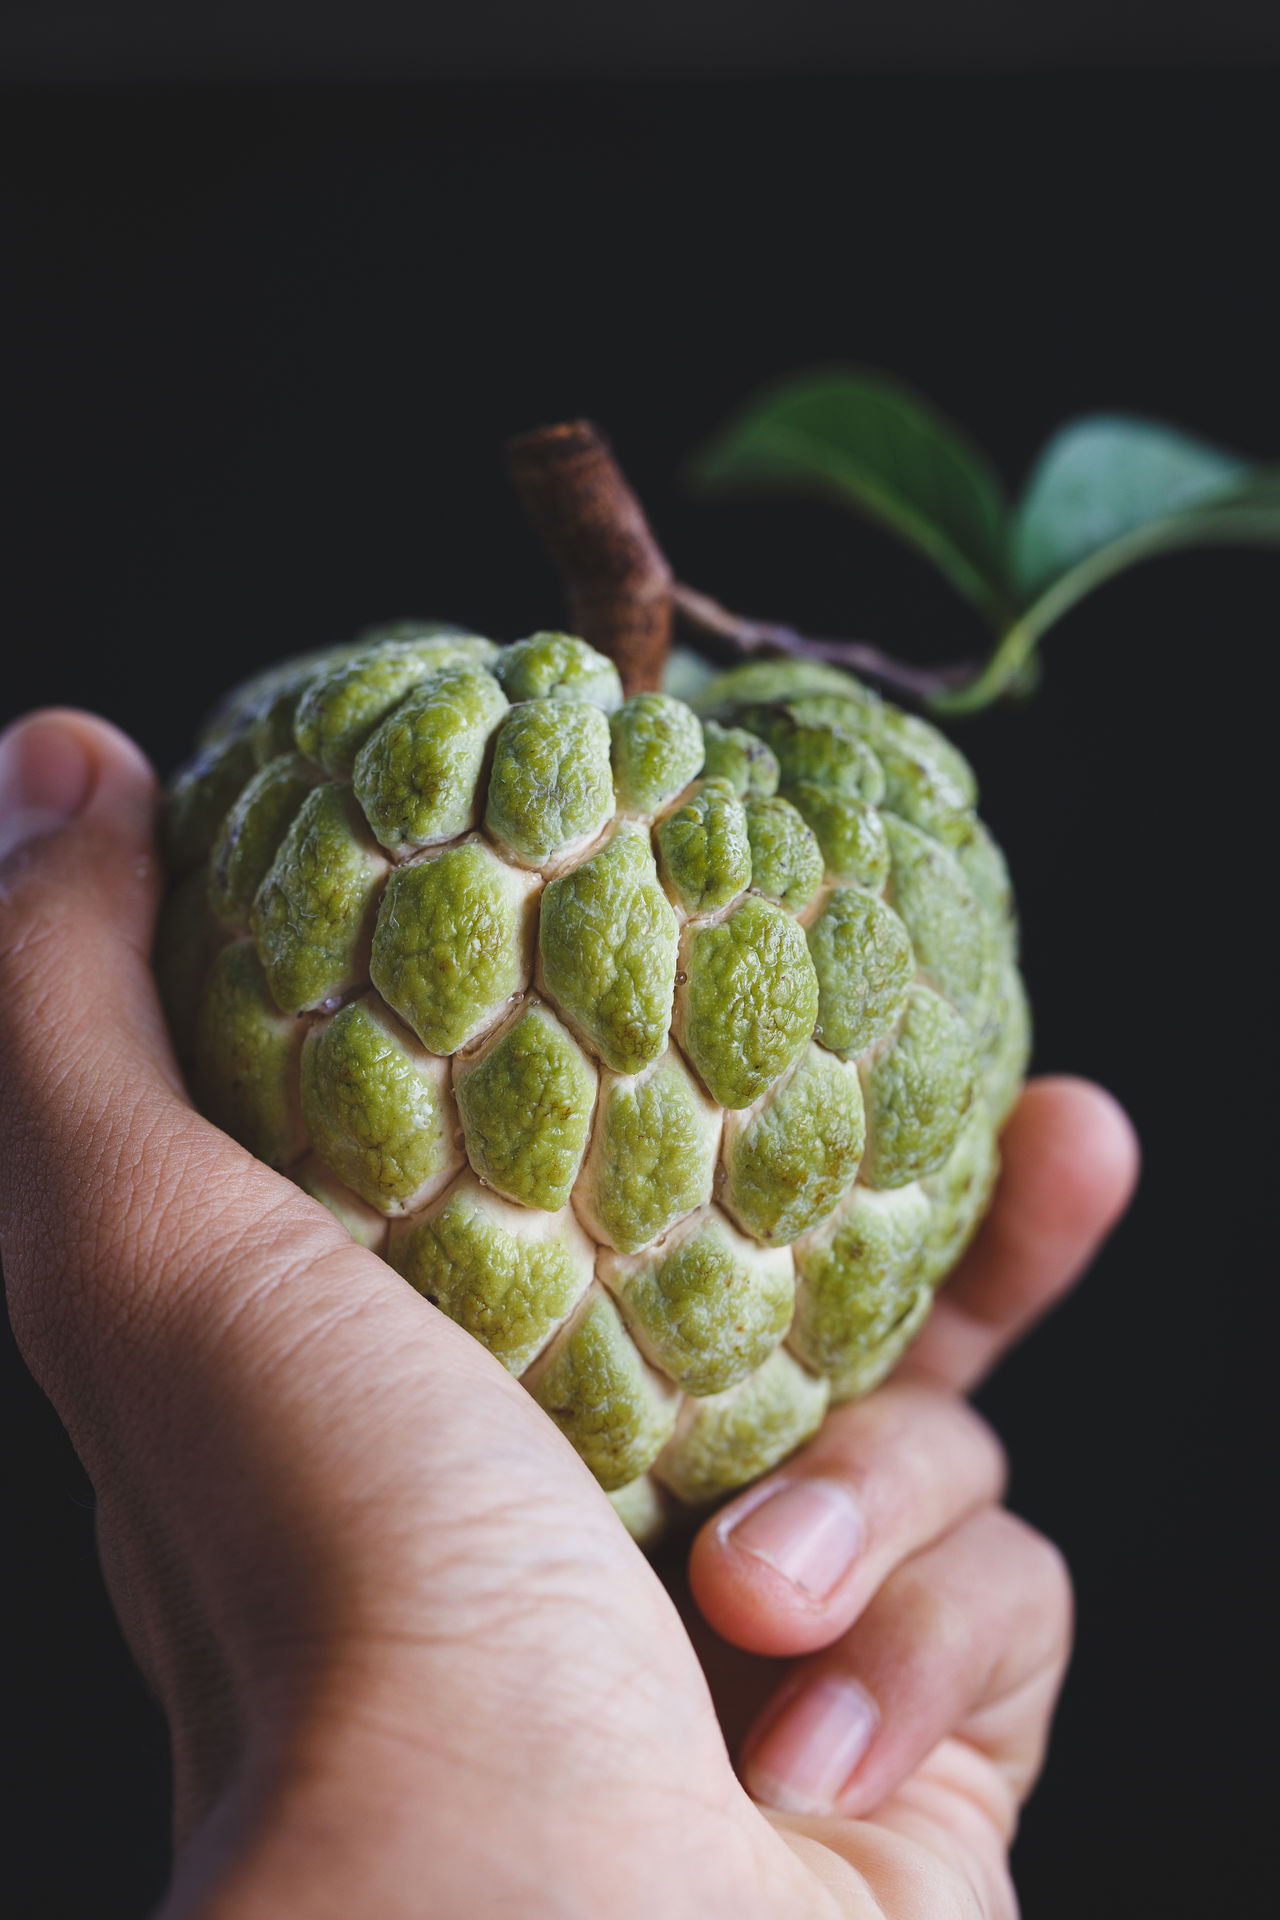 Custard apple on the my hand ASIA Bamboo Basket Burlap Custard Apple Dark Food Food And Drink Fresh Fruit Green Heathy Food Leaf Mãng Cầu Nature Old Wood Plant Raw Sweet Tasty Vietnam Vietnamese Fruit